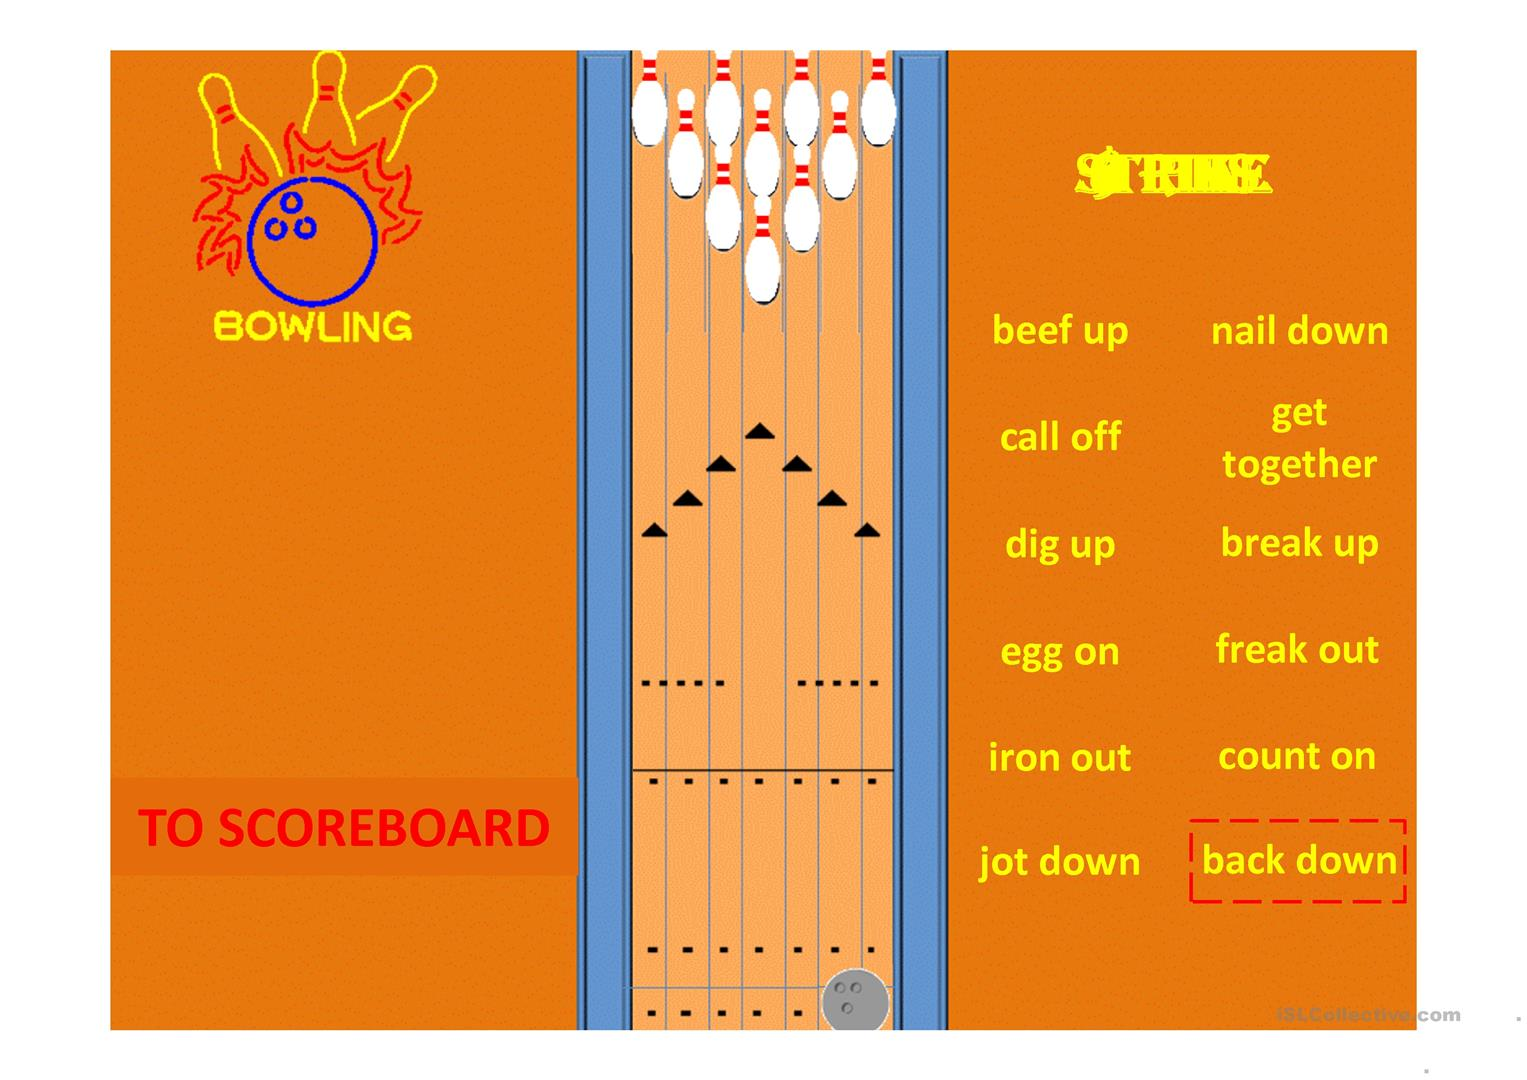 Phrasal Verbs Ppt Solo Bowling Game